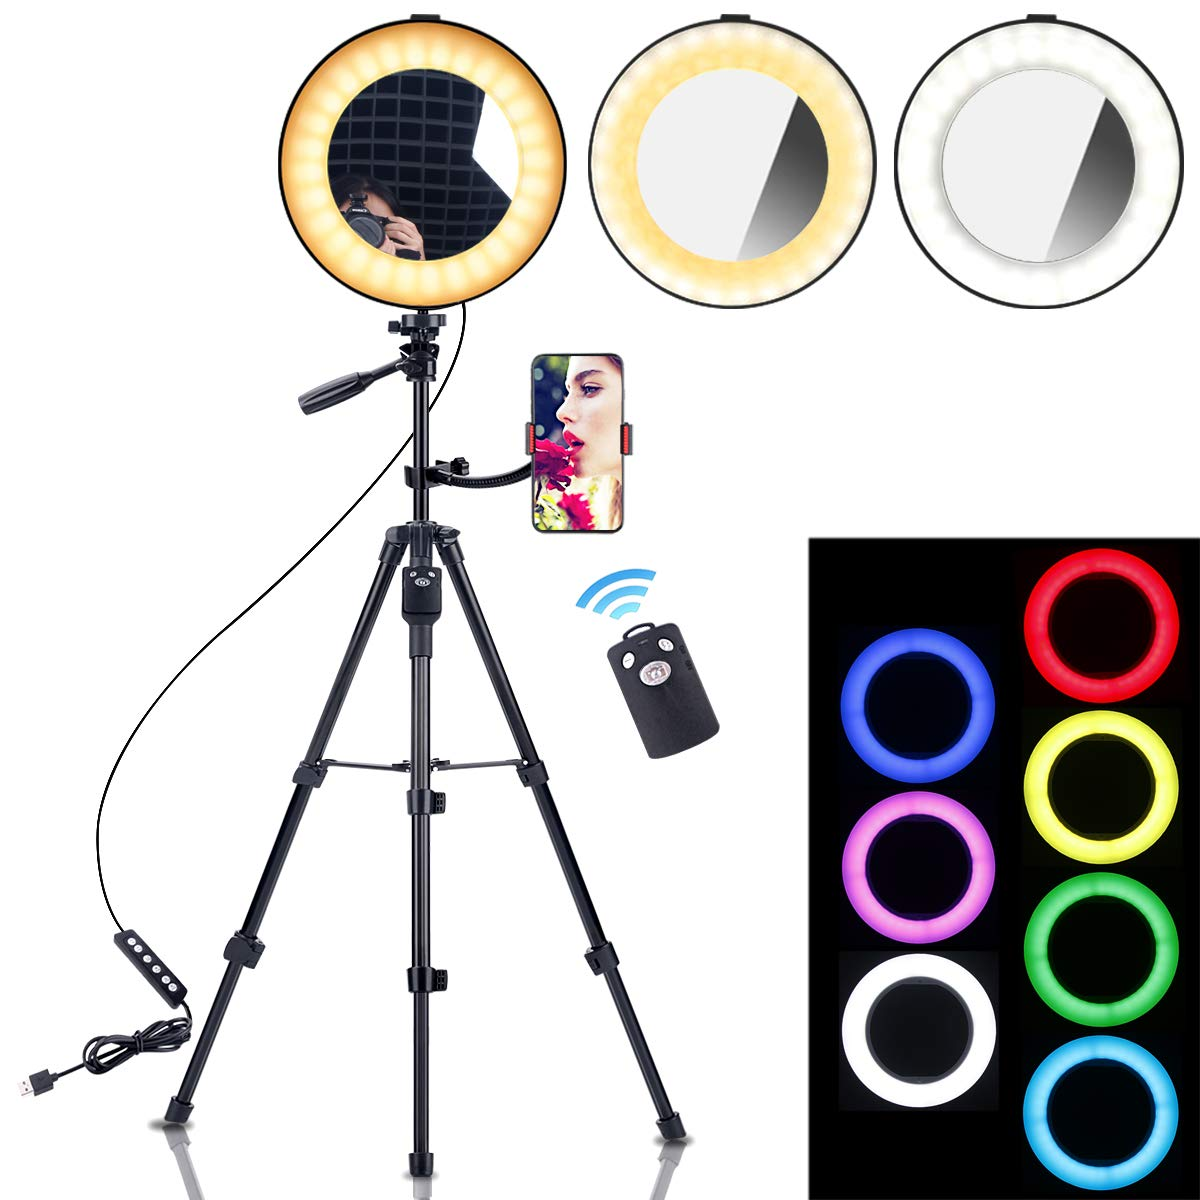 B-Land 8'' Ring Light with Tripod Stand & Phone Holder, Removable Makeup Mirror with Lights, Dimmable RGB LED Selfie Ring Lights with Remote for Photos & YouTube Videos